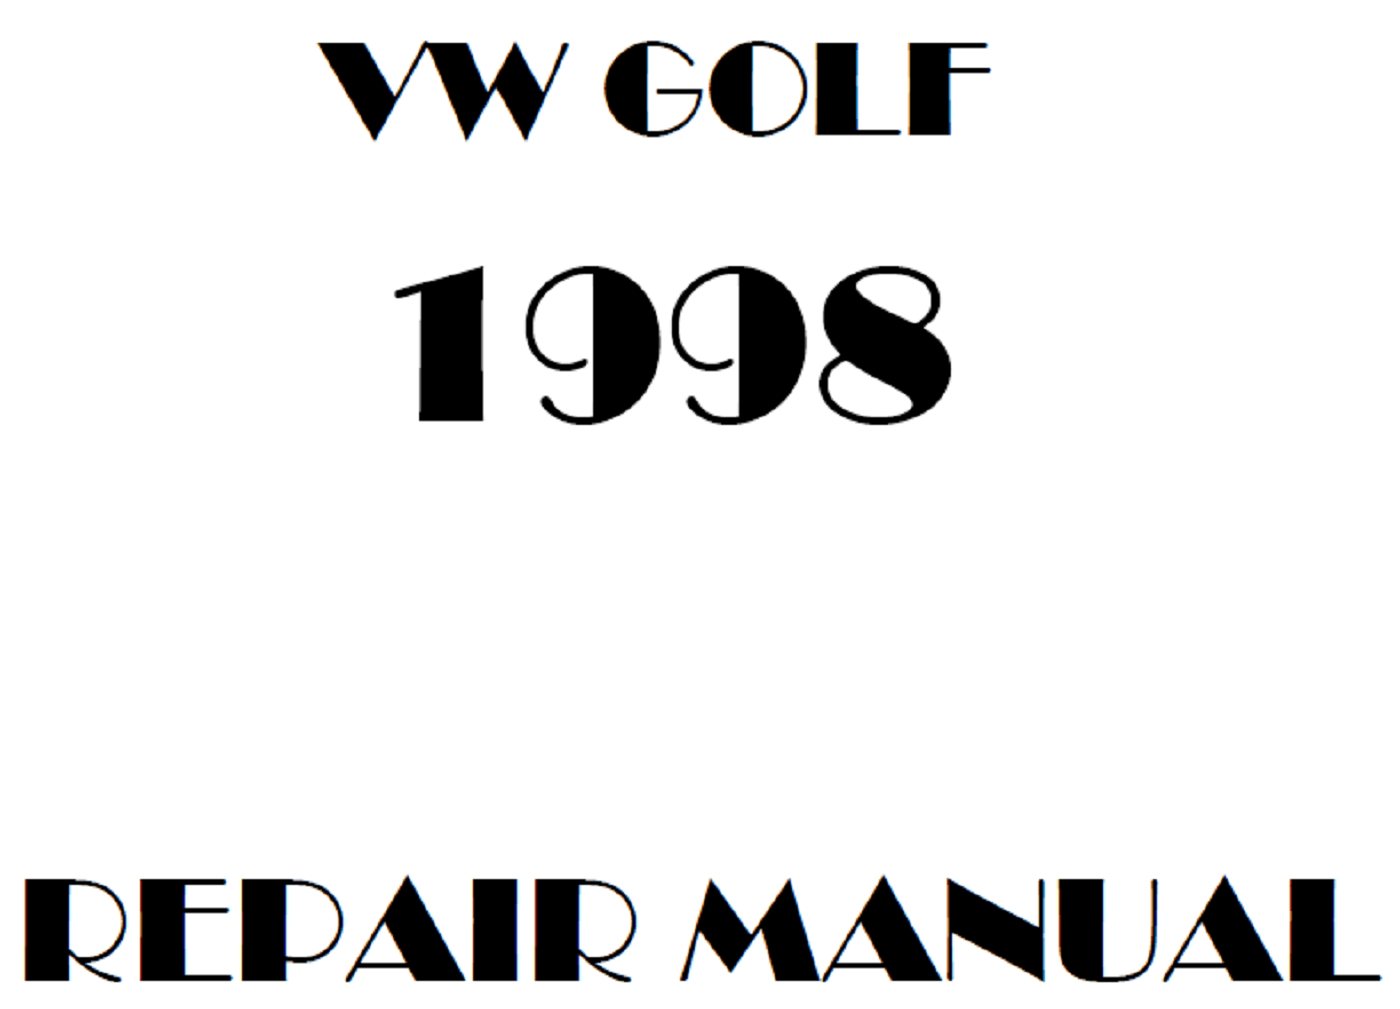 1998 Volkswagen Golf repair manual